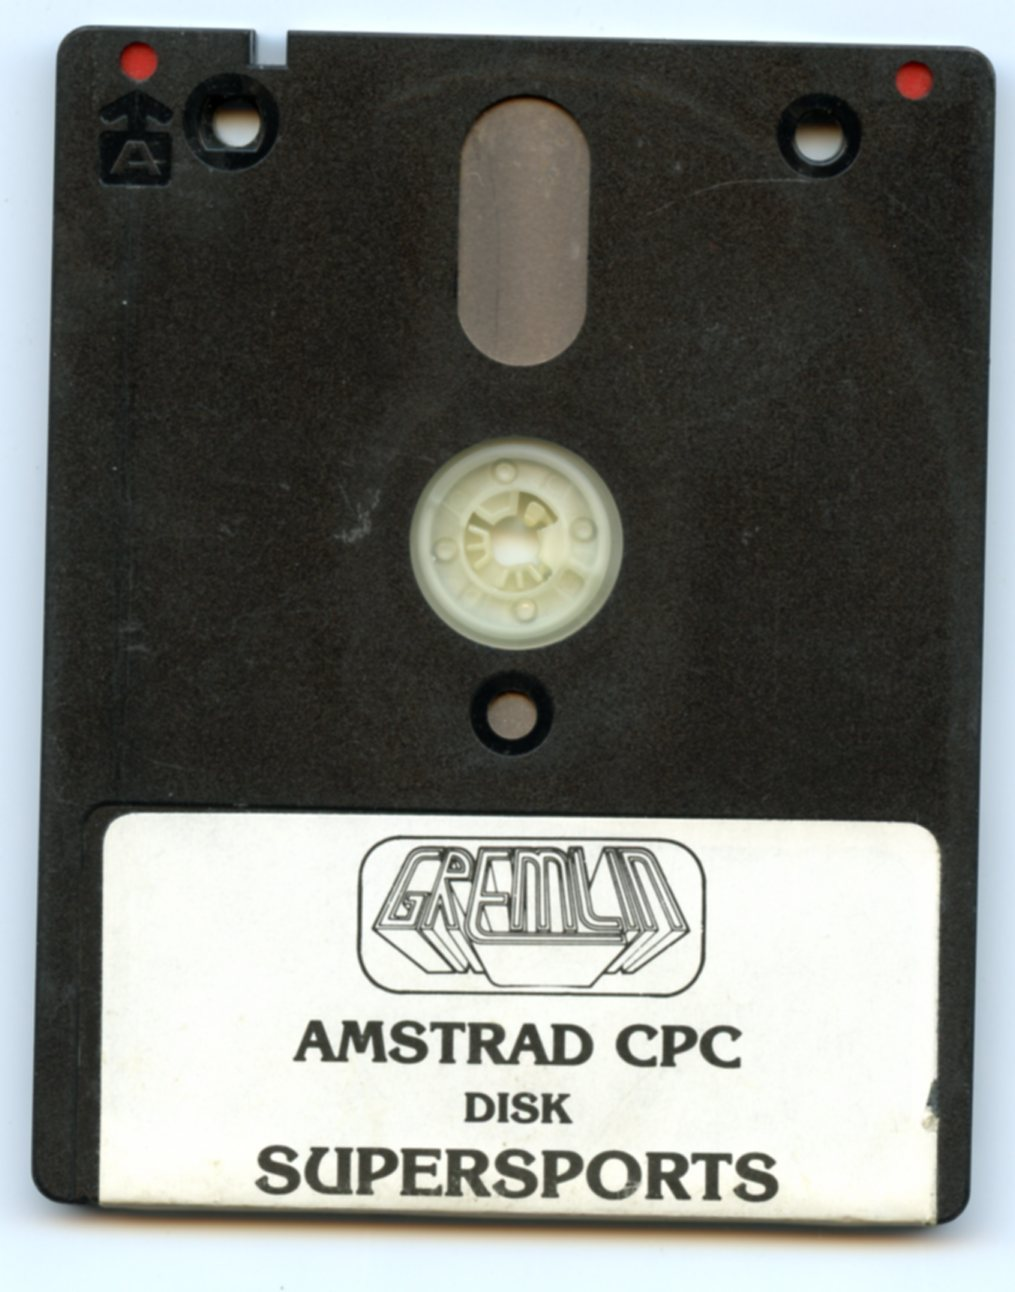 Supersports (Amstrad Disk)